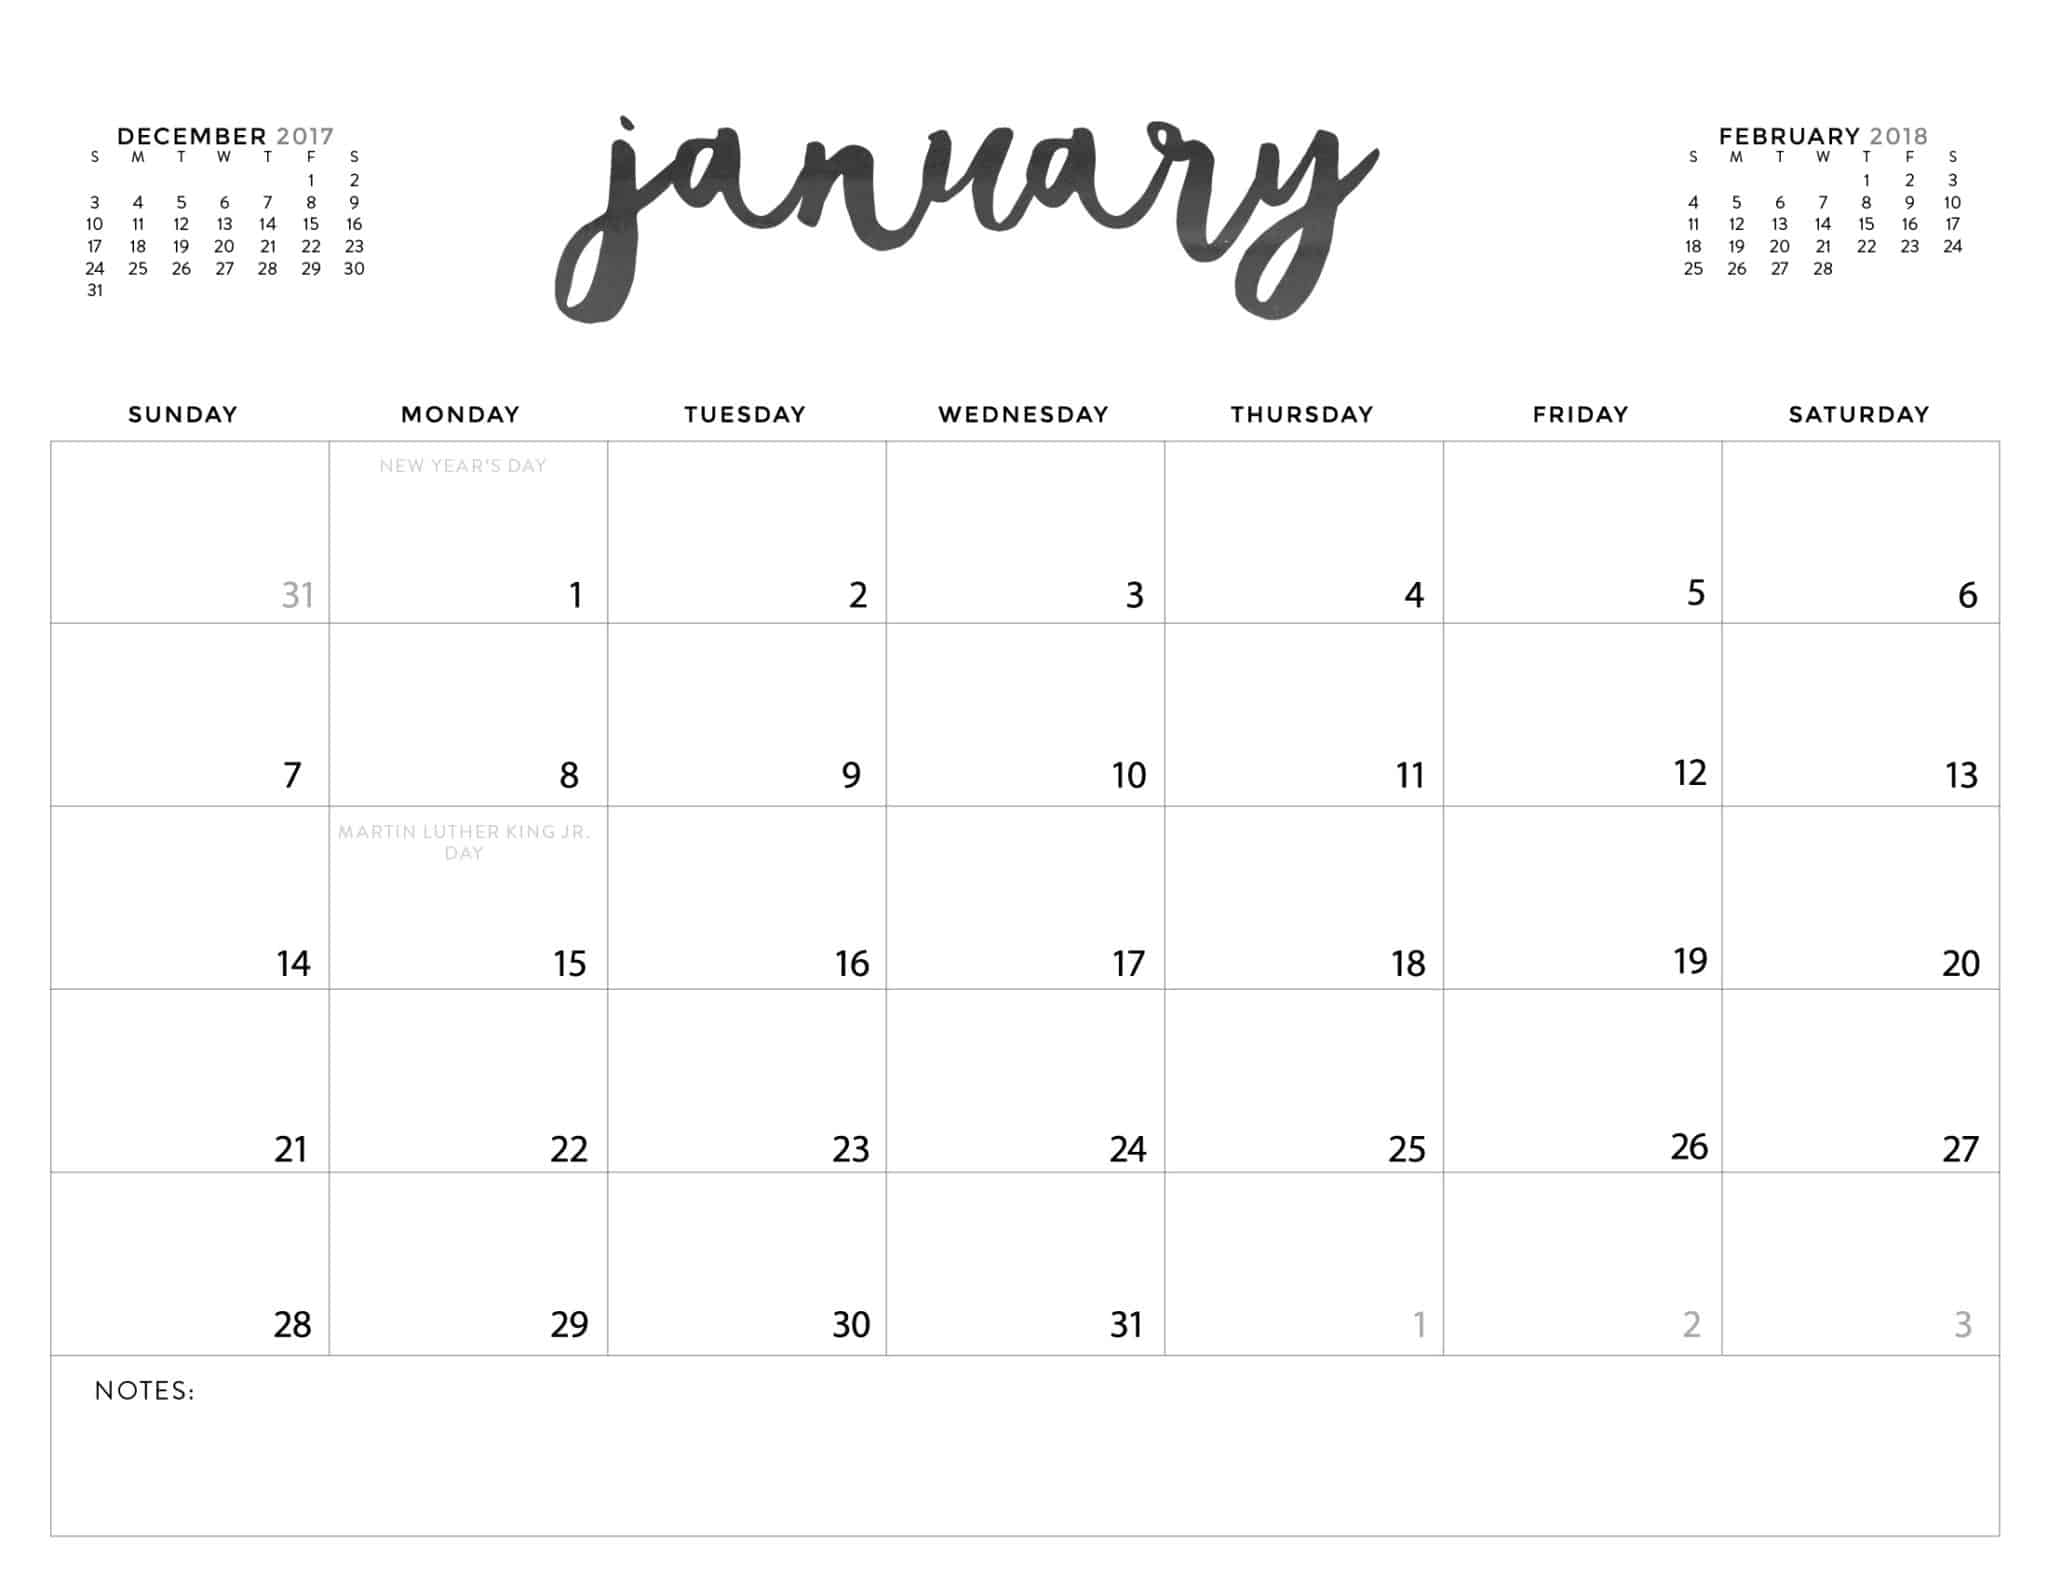 photo relating to Calendars Printable called Obtain your Free of charge 2018 Printable Calendars nowadays! 28